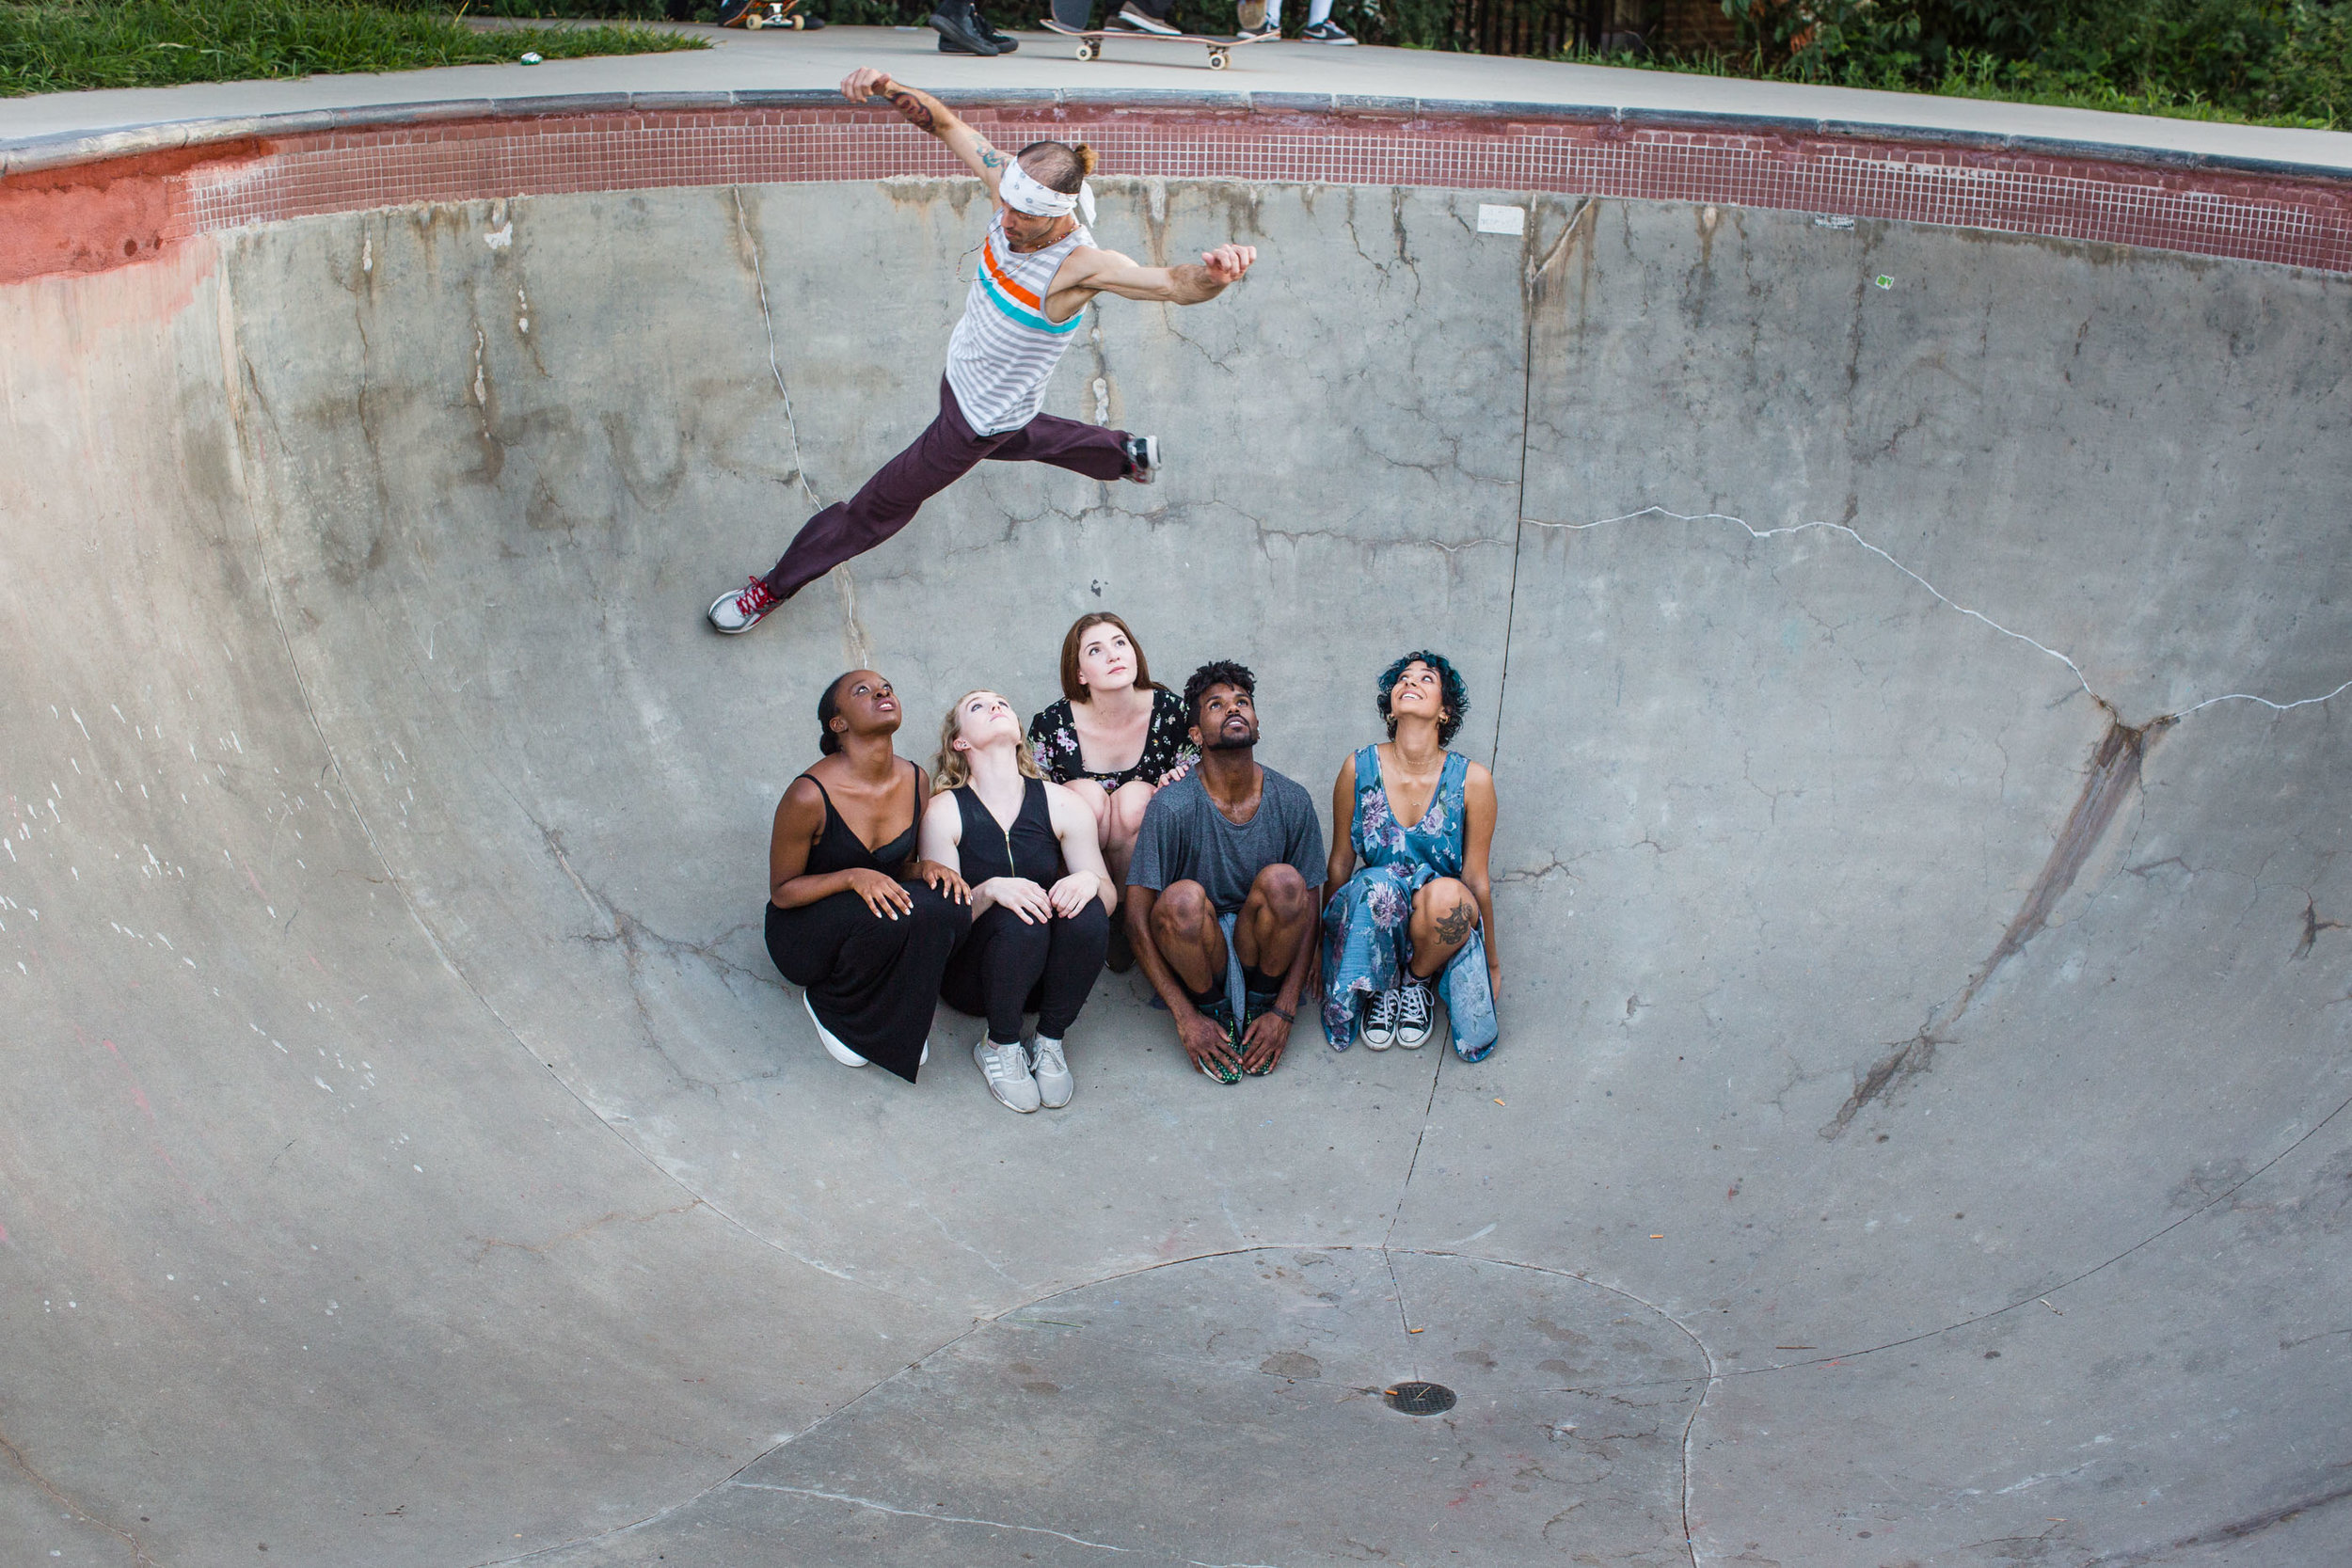 2018_08_25_shals_skate_park_durham_dances_web-selects-2.jpg